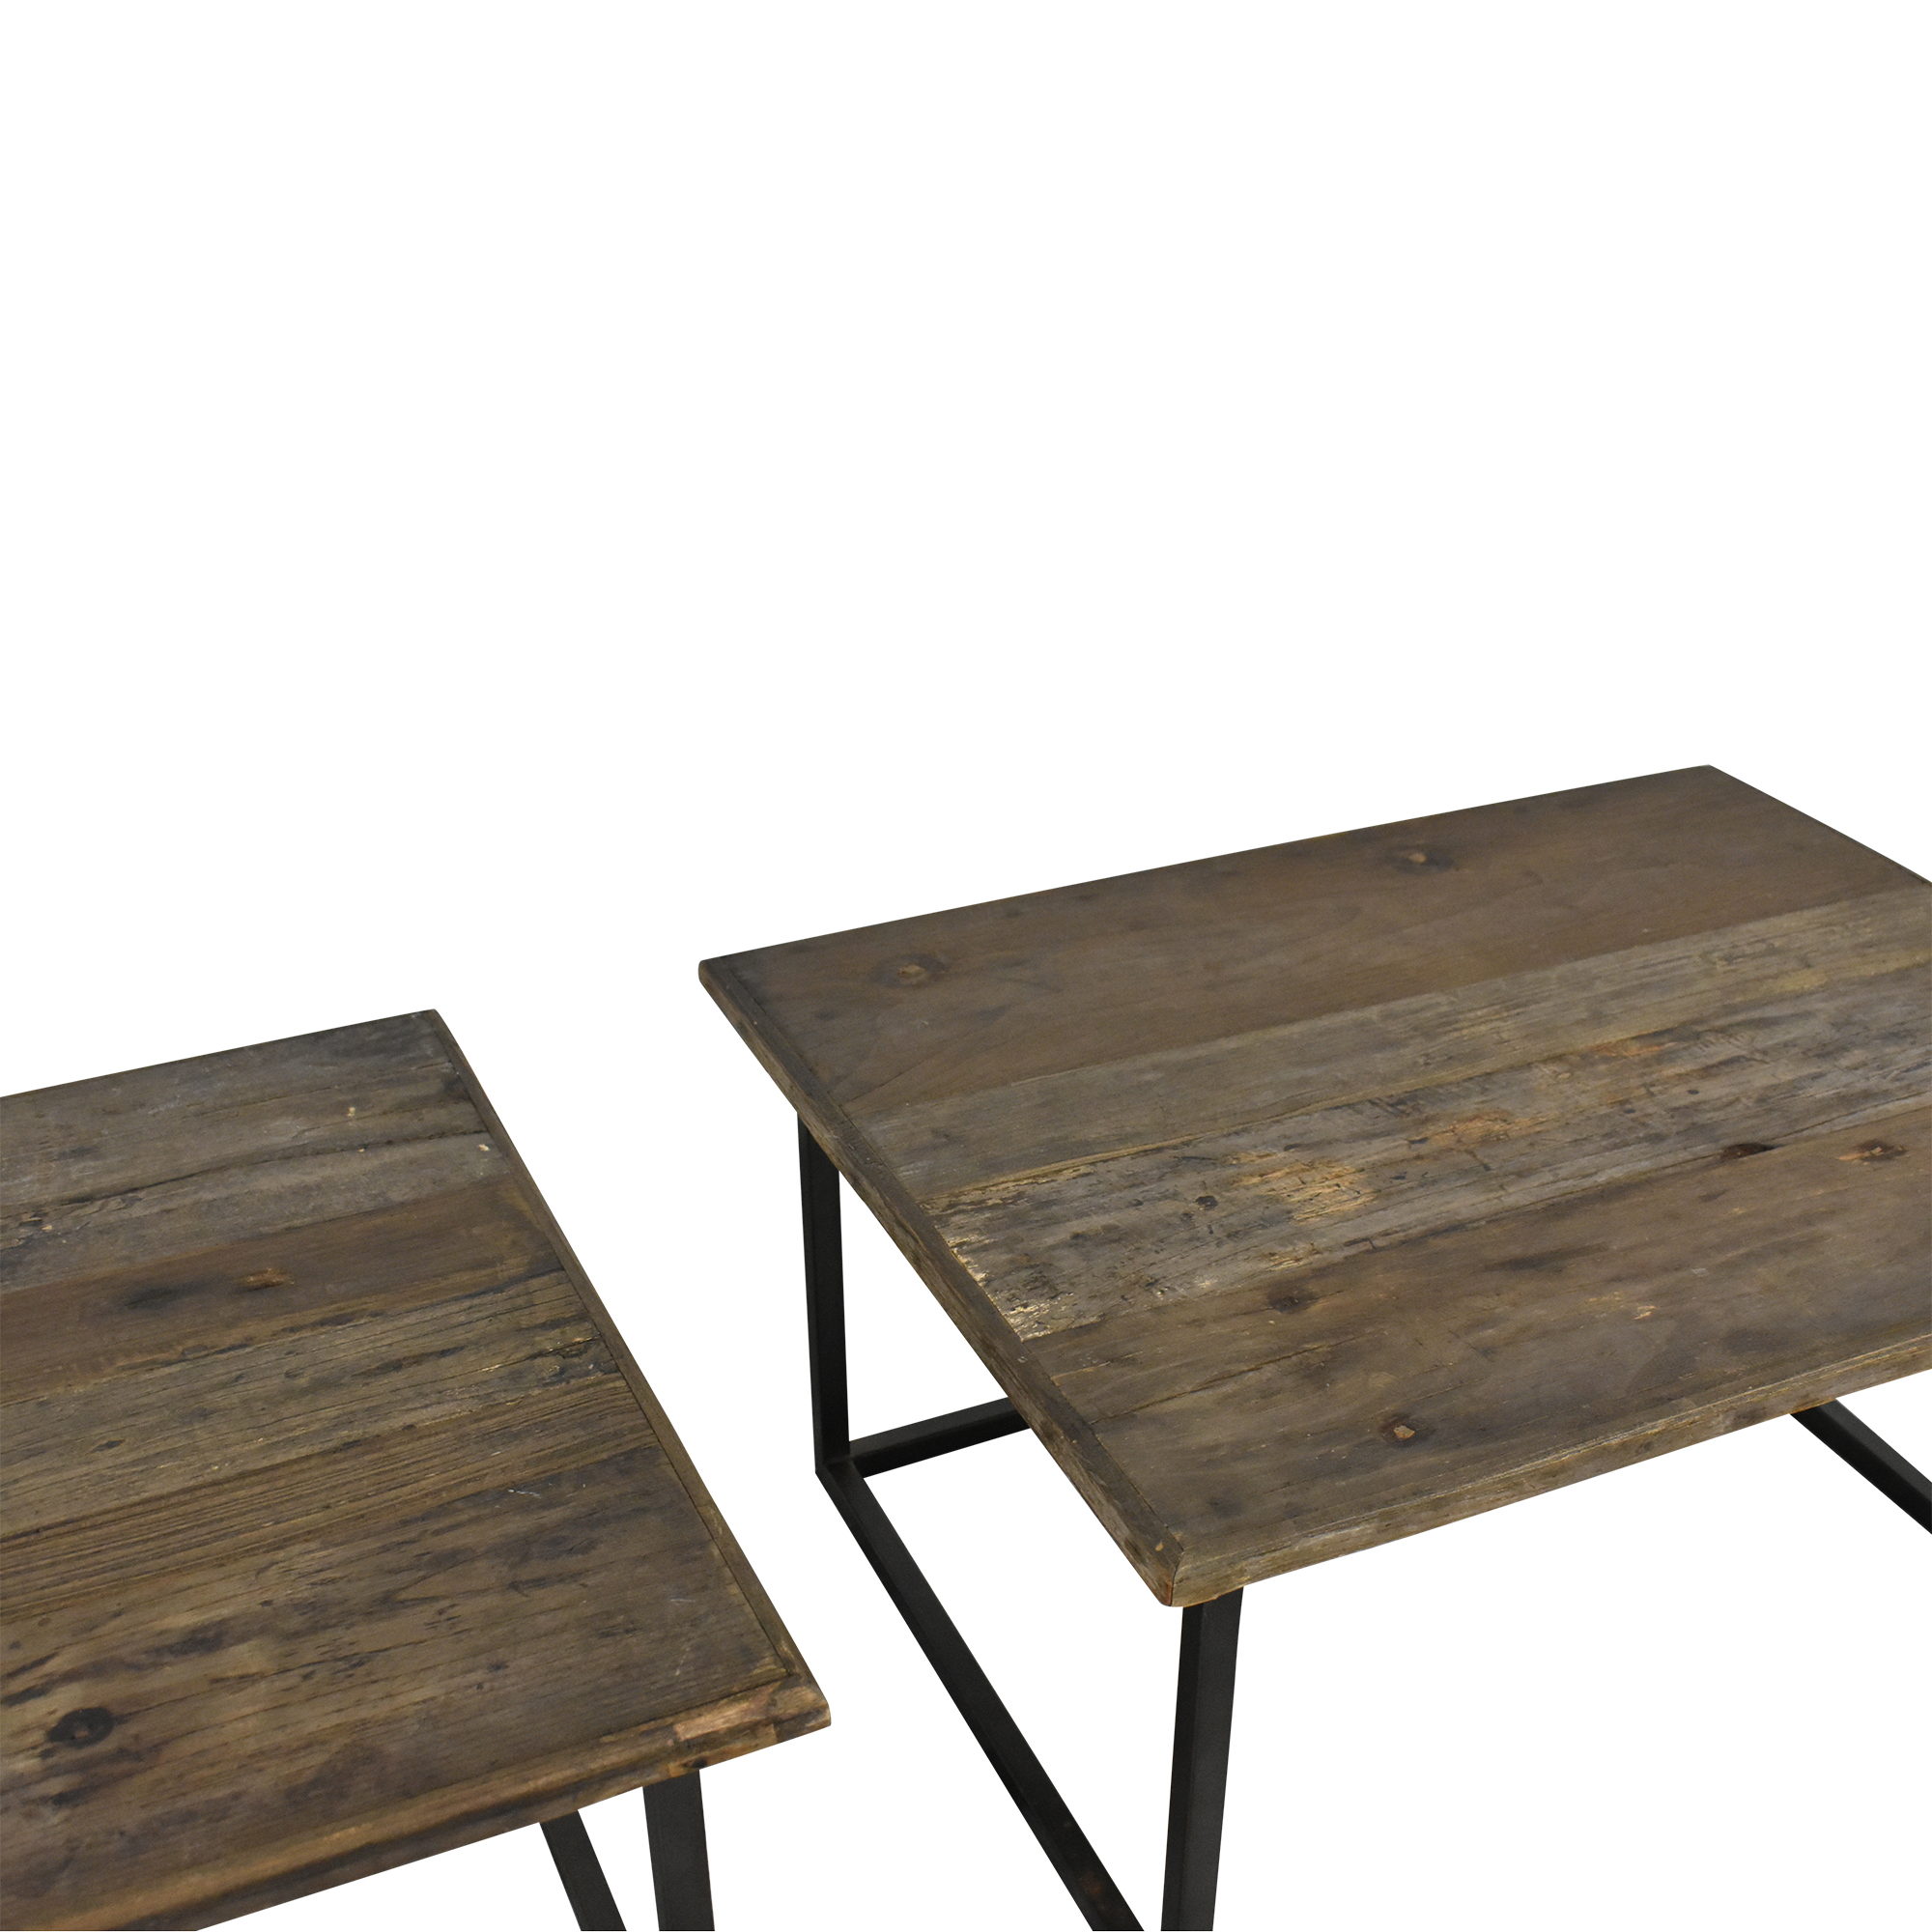 Restoration Hardware Restoration Hardware Accent Tables on sale